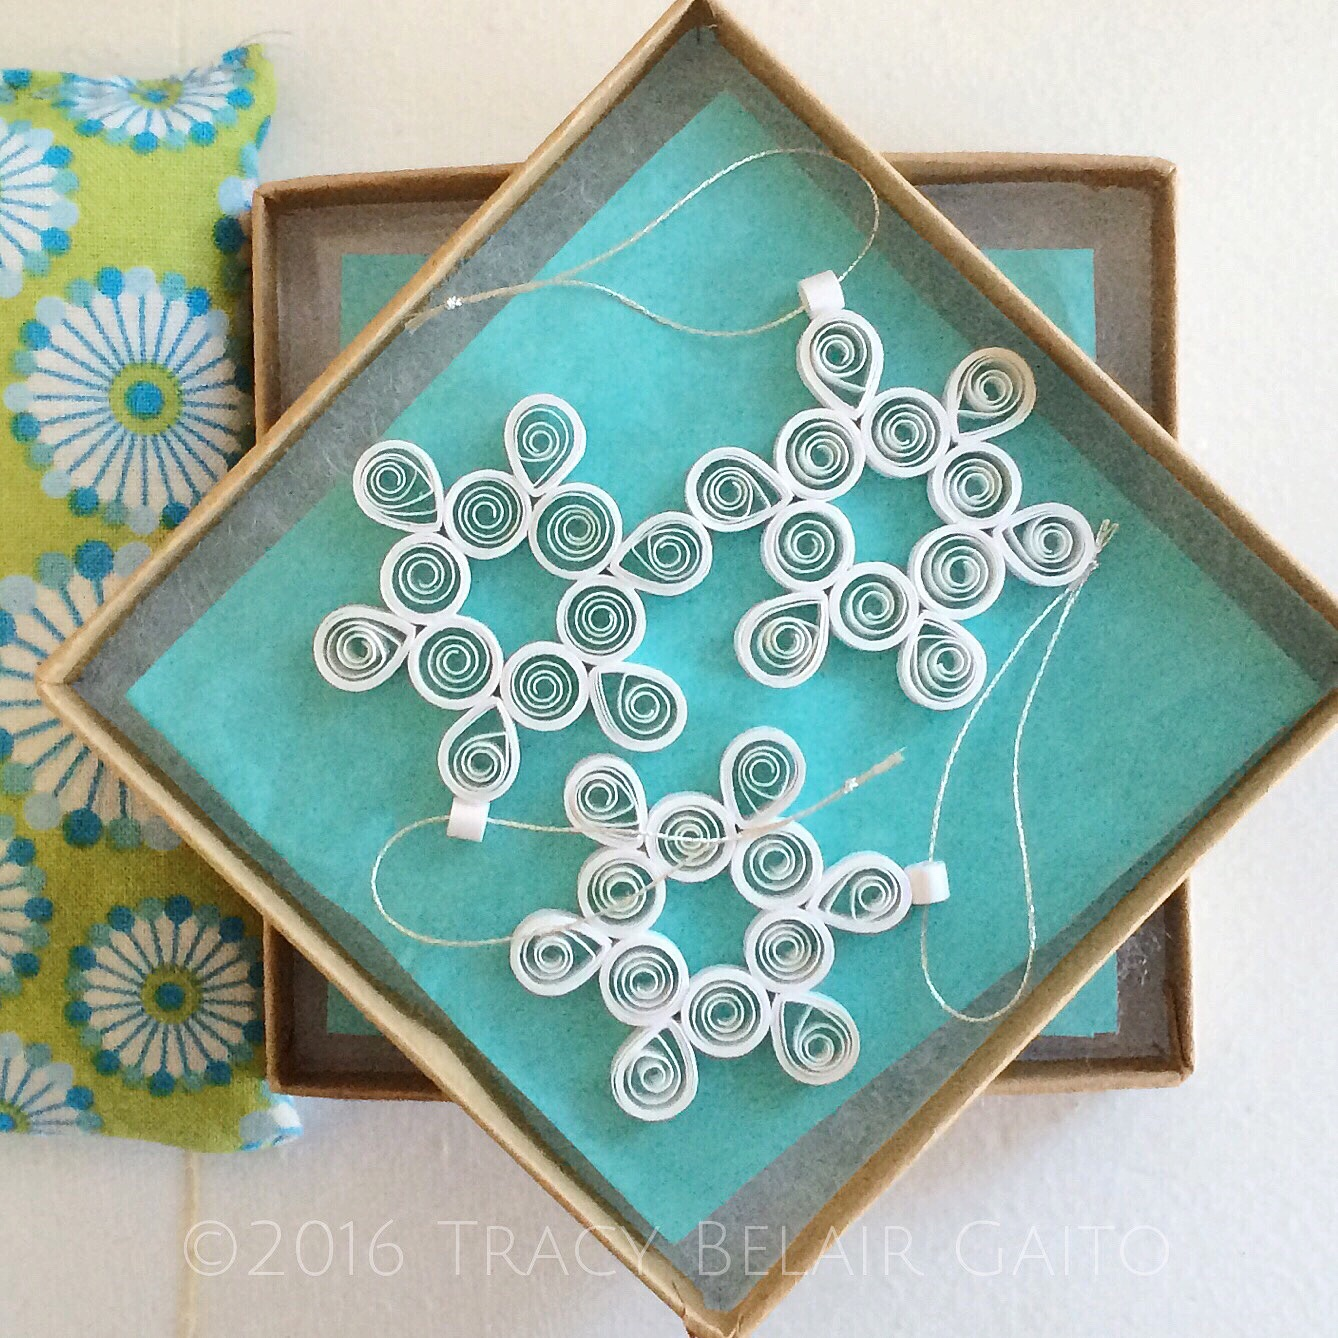 paper filigree snowflakes by runnerbeanarts | tracy belair gaito